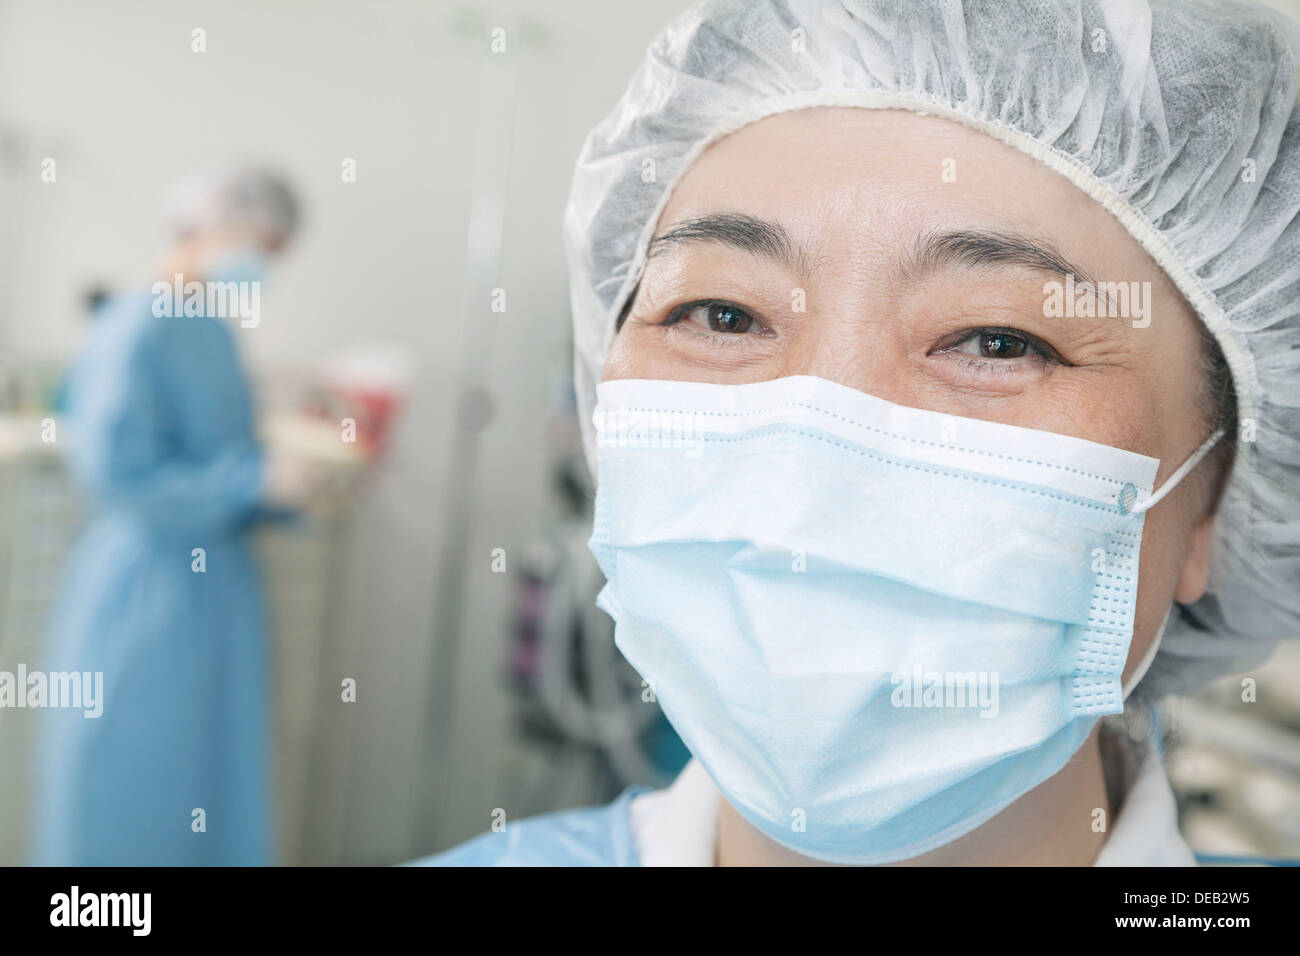 Portrait of surgeon with surgical mask and surgical cap in the operating room - Stock Image